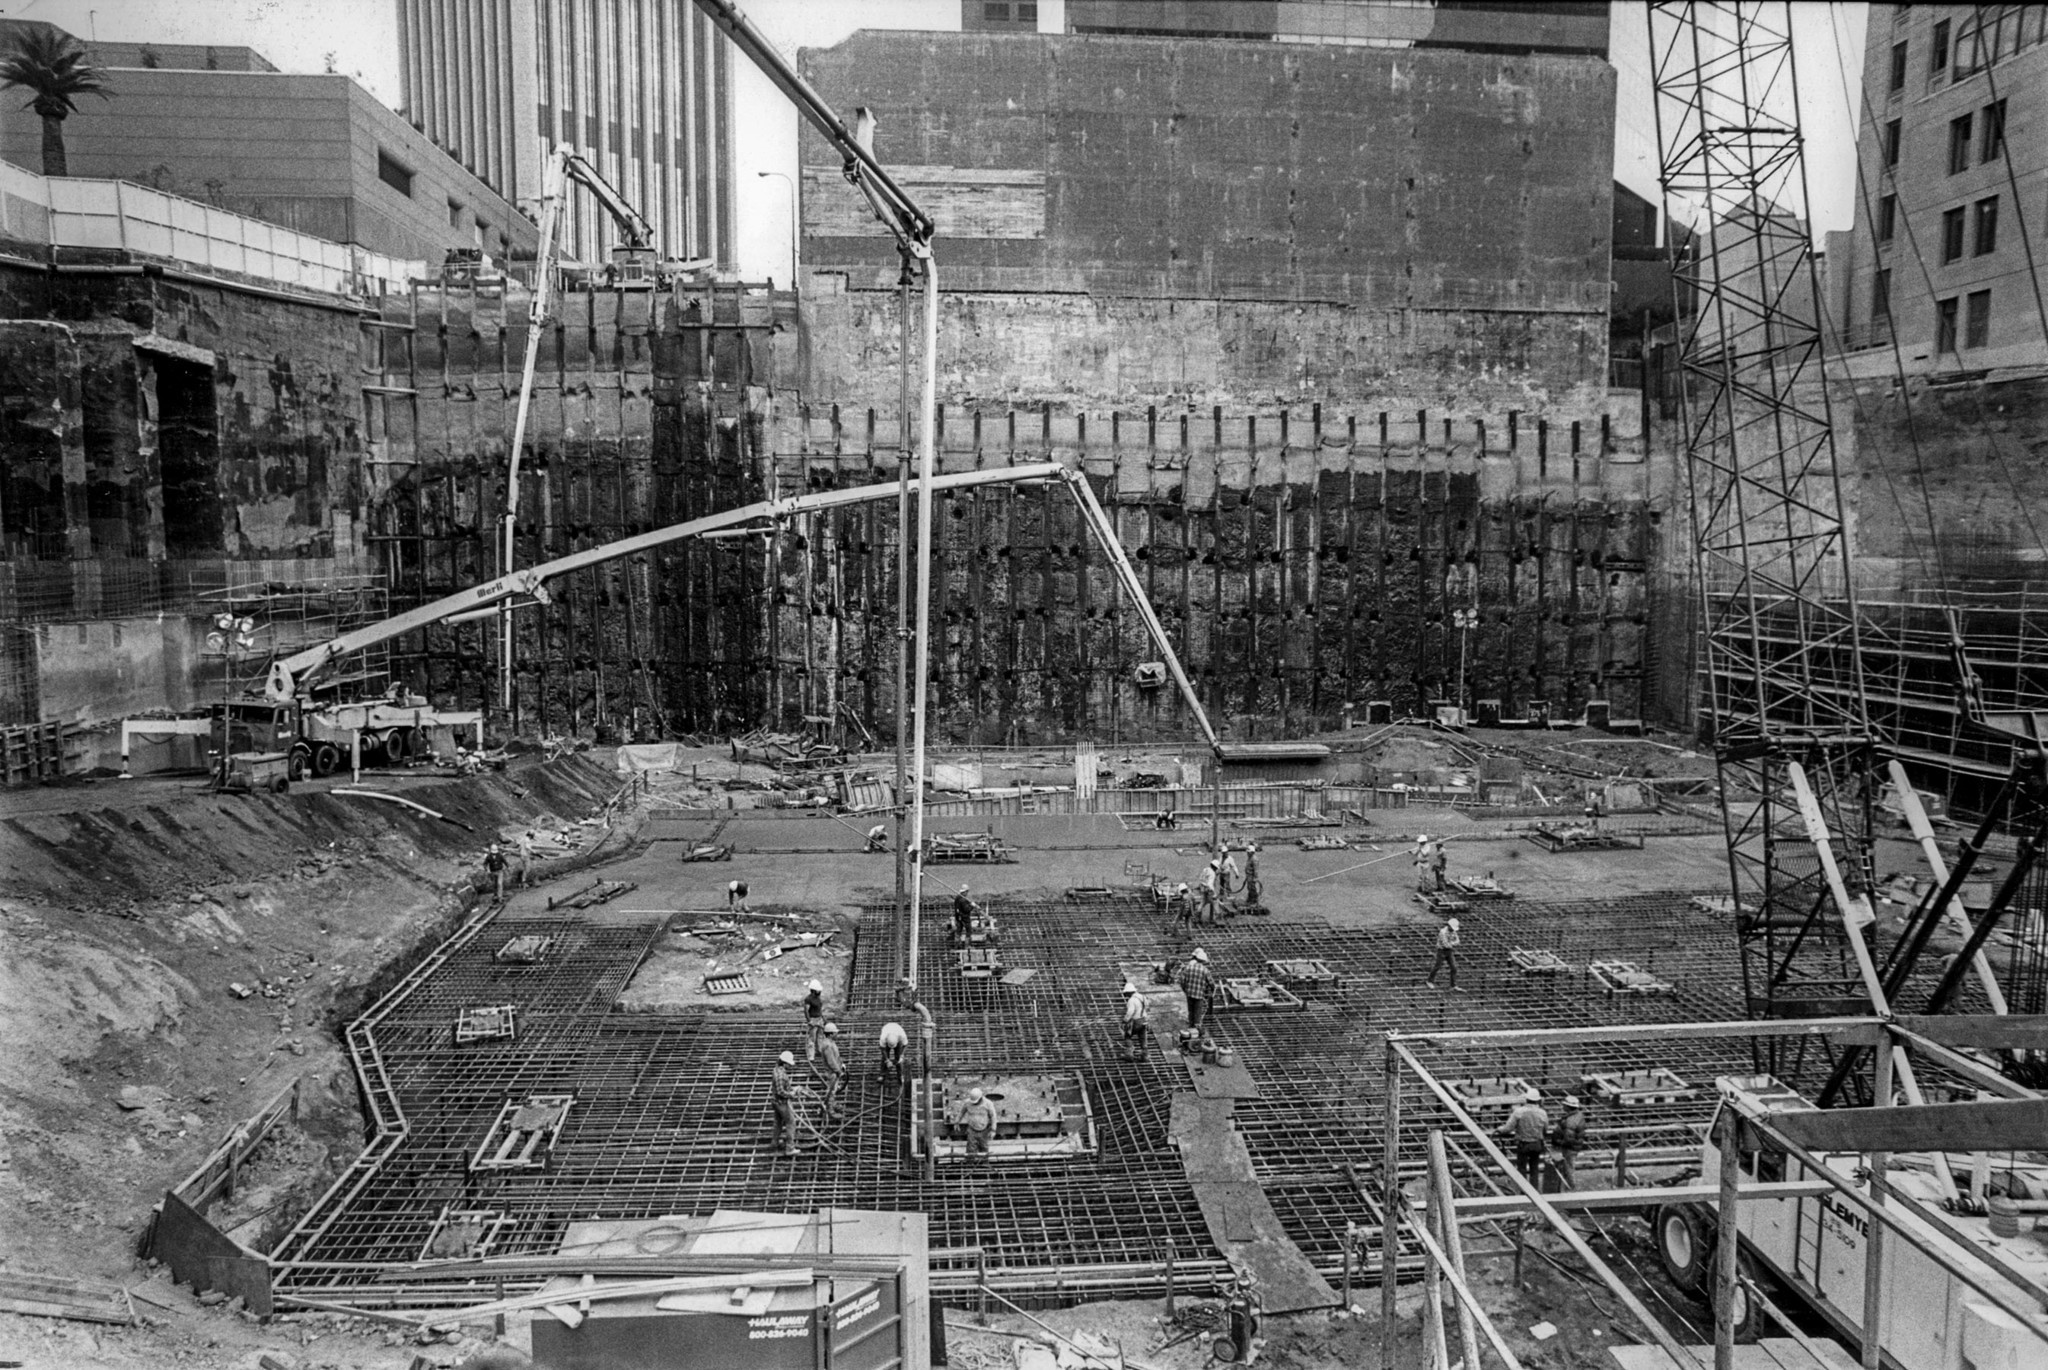 Jan. 30, 1988: Construction of the Library Tower begins with a 15 hour concrete pour of the foundat